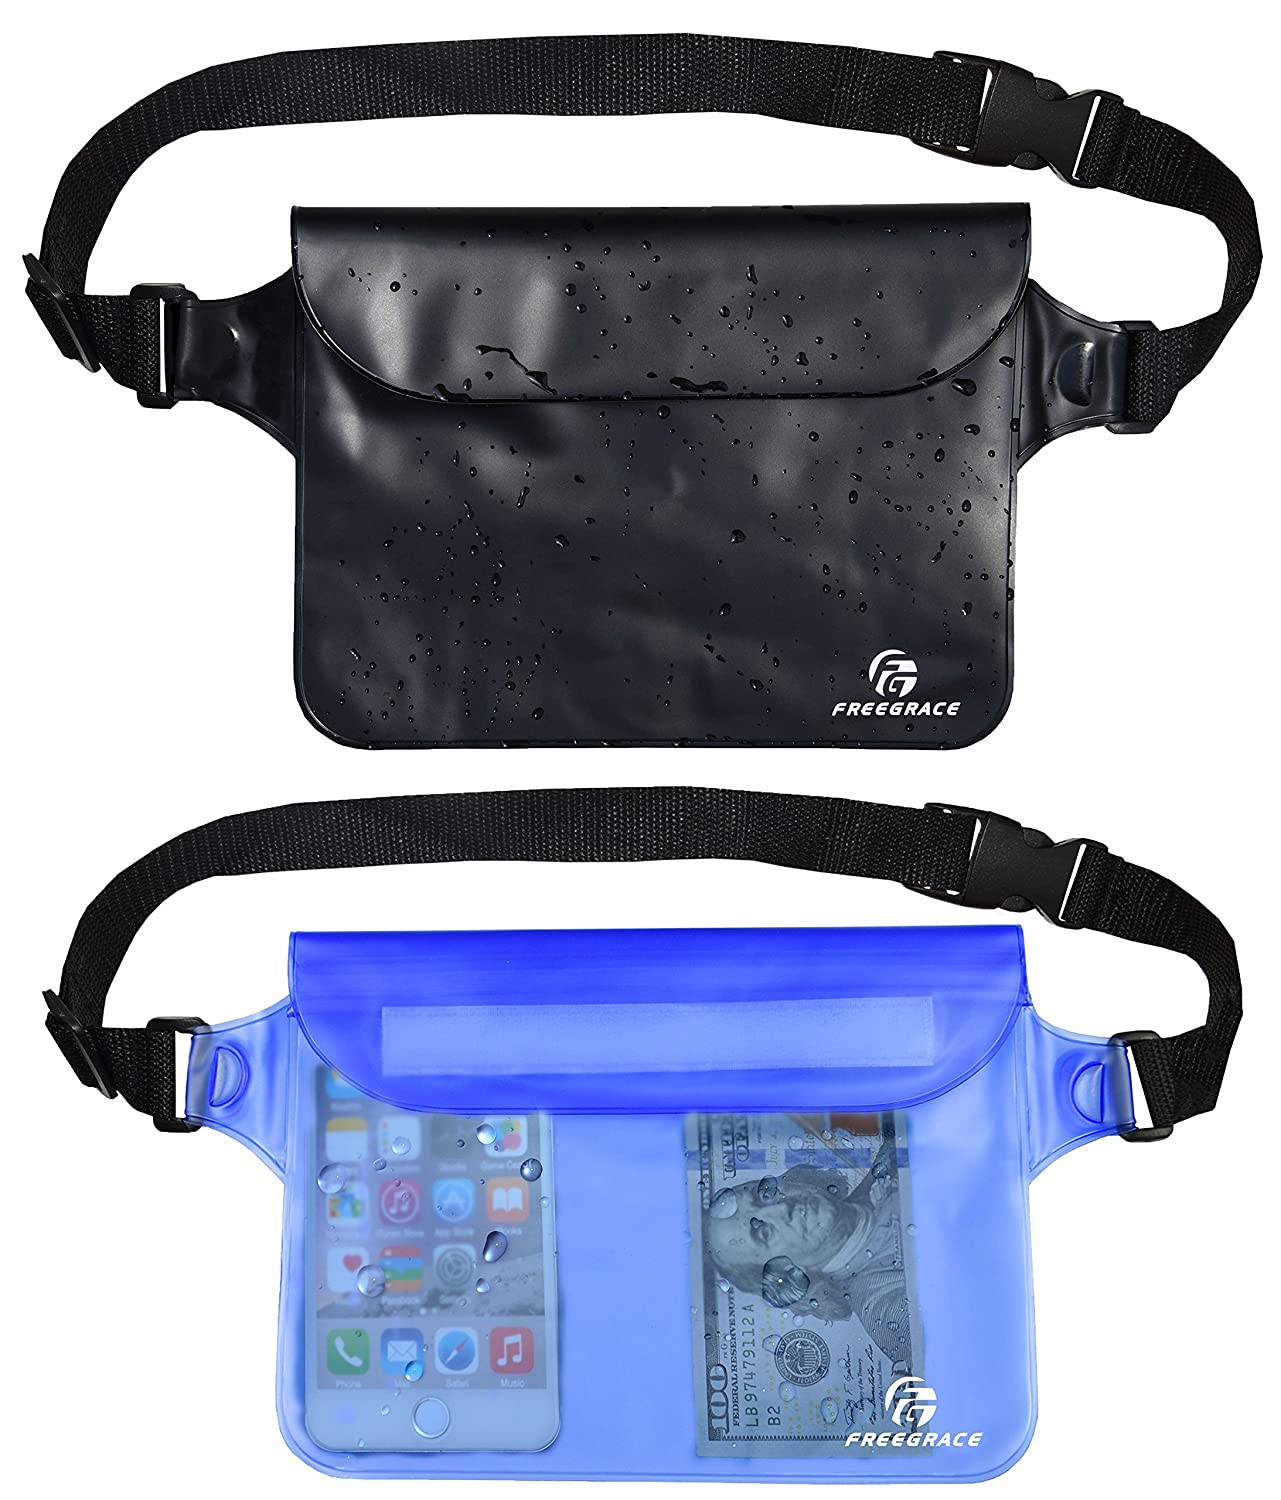 Freegrace Premium Waterproof Pouch Set